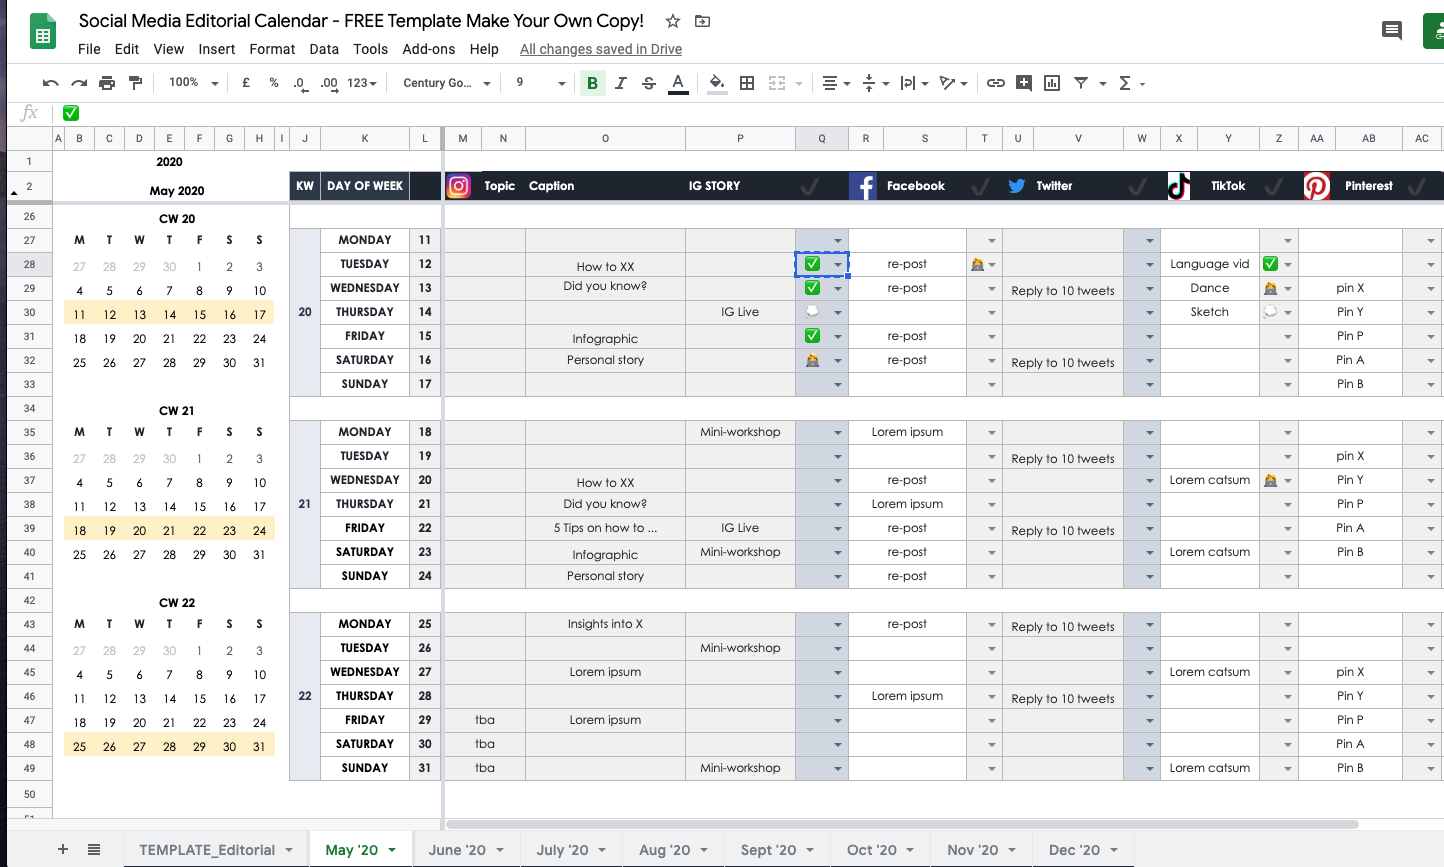 How To Plan Your Social Media in 2020 as an individual or small company —  FREE Google Sheets Editorial Calendar Template | by Gracia Kleijnen | Google  Sheets Geeks | Medium